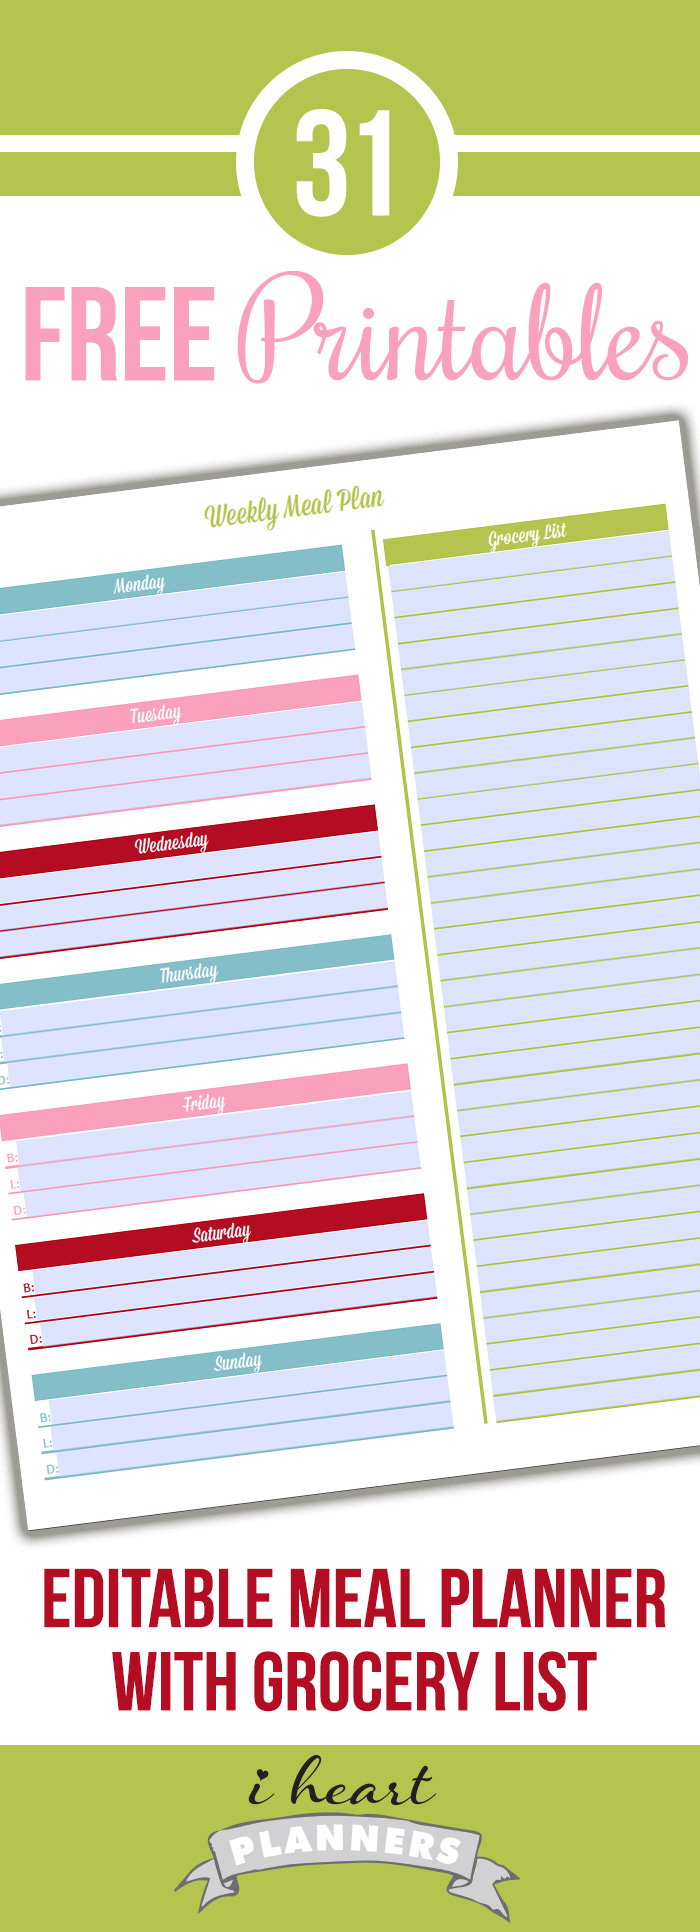 Day 20: Editable Meal Planner with Grocery List - I Heart Planners